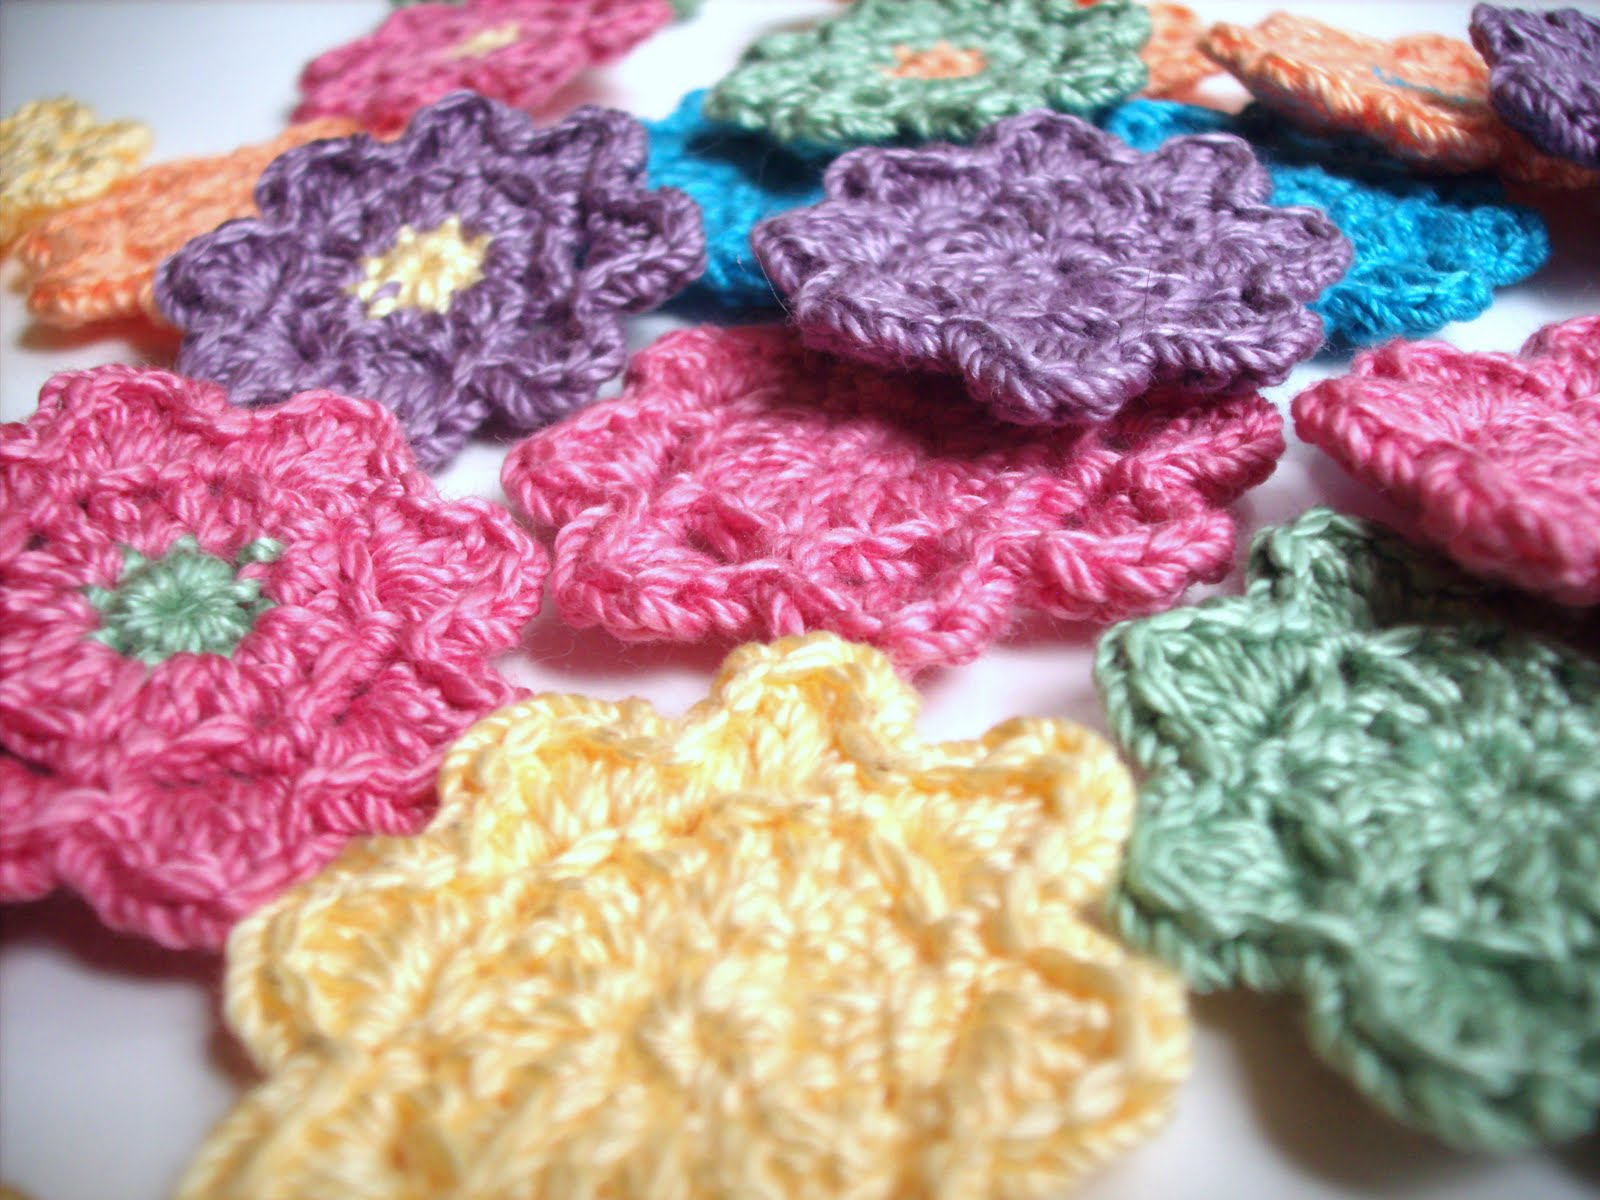 Free Crochet Patterns For Cotton Thread : COTTON THREAD CROCHET PATTERNS Free Patterns